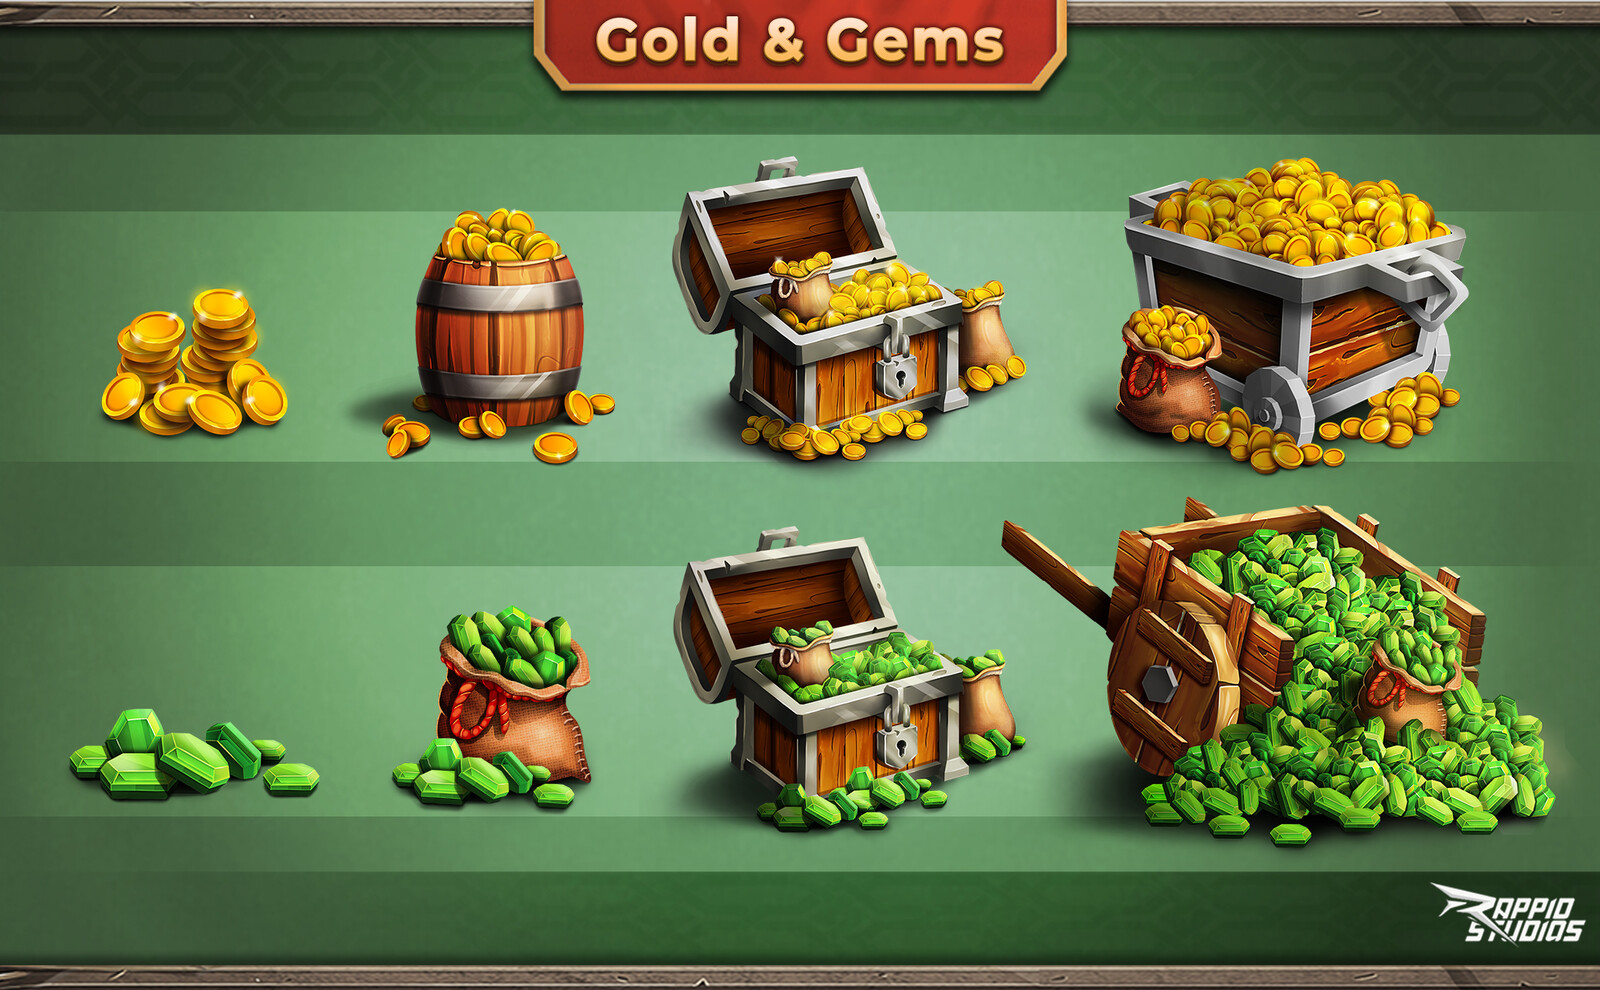 Gem packs and Gold for the shop menu